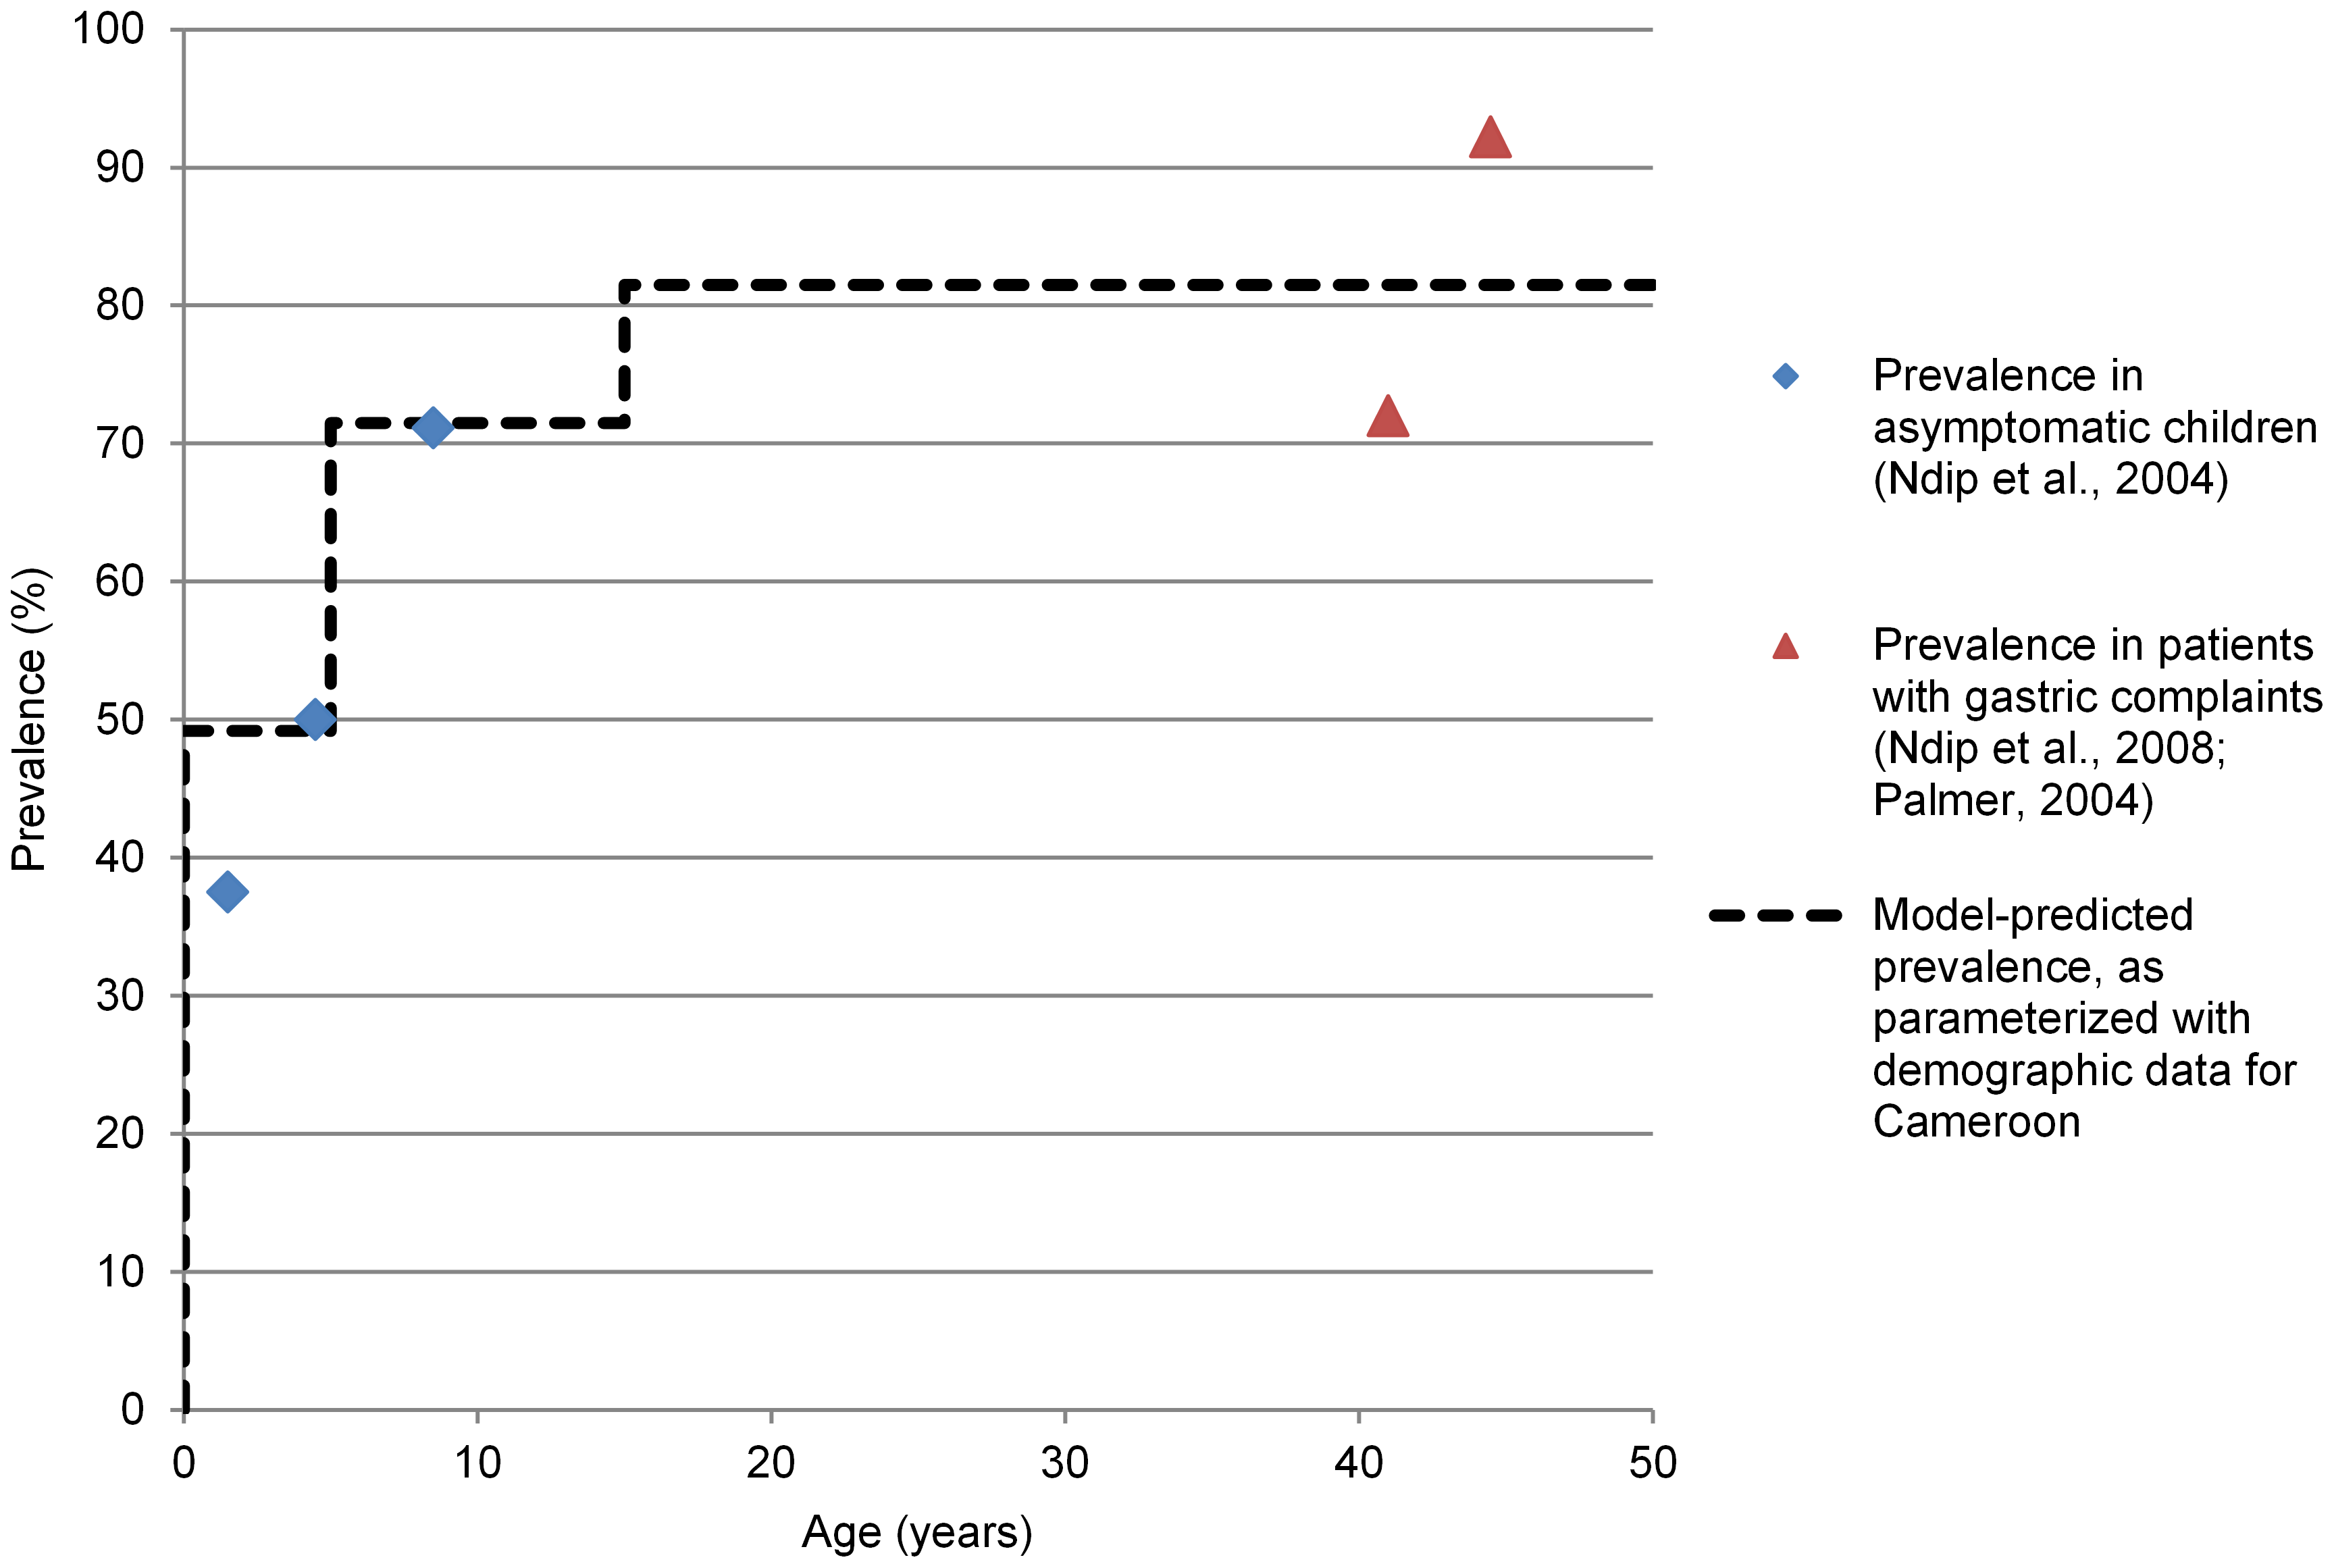 Model predicted prevalence under the base scenario versus observed <i>H. pylori</i> prevalences by age in Cameroon.